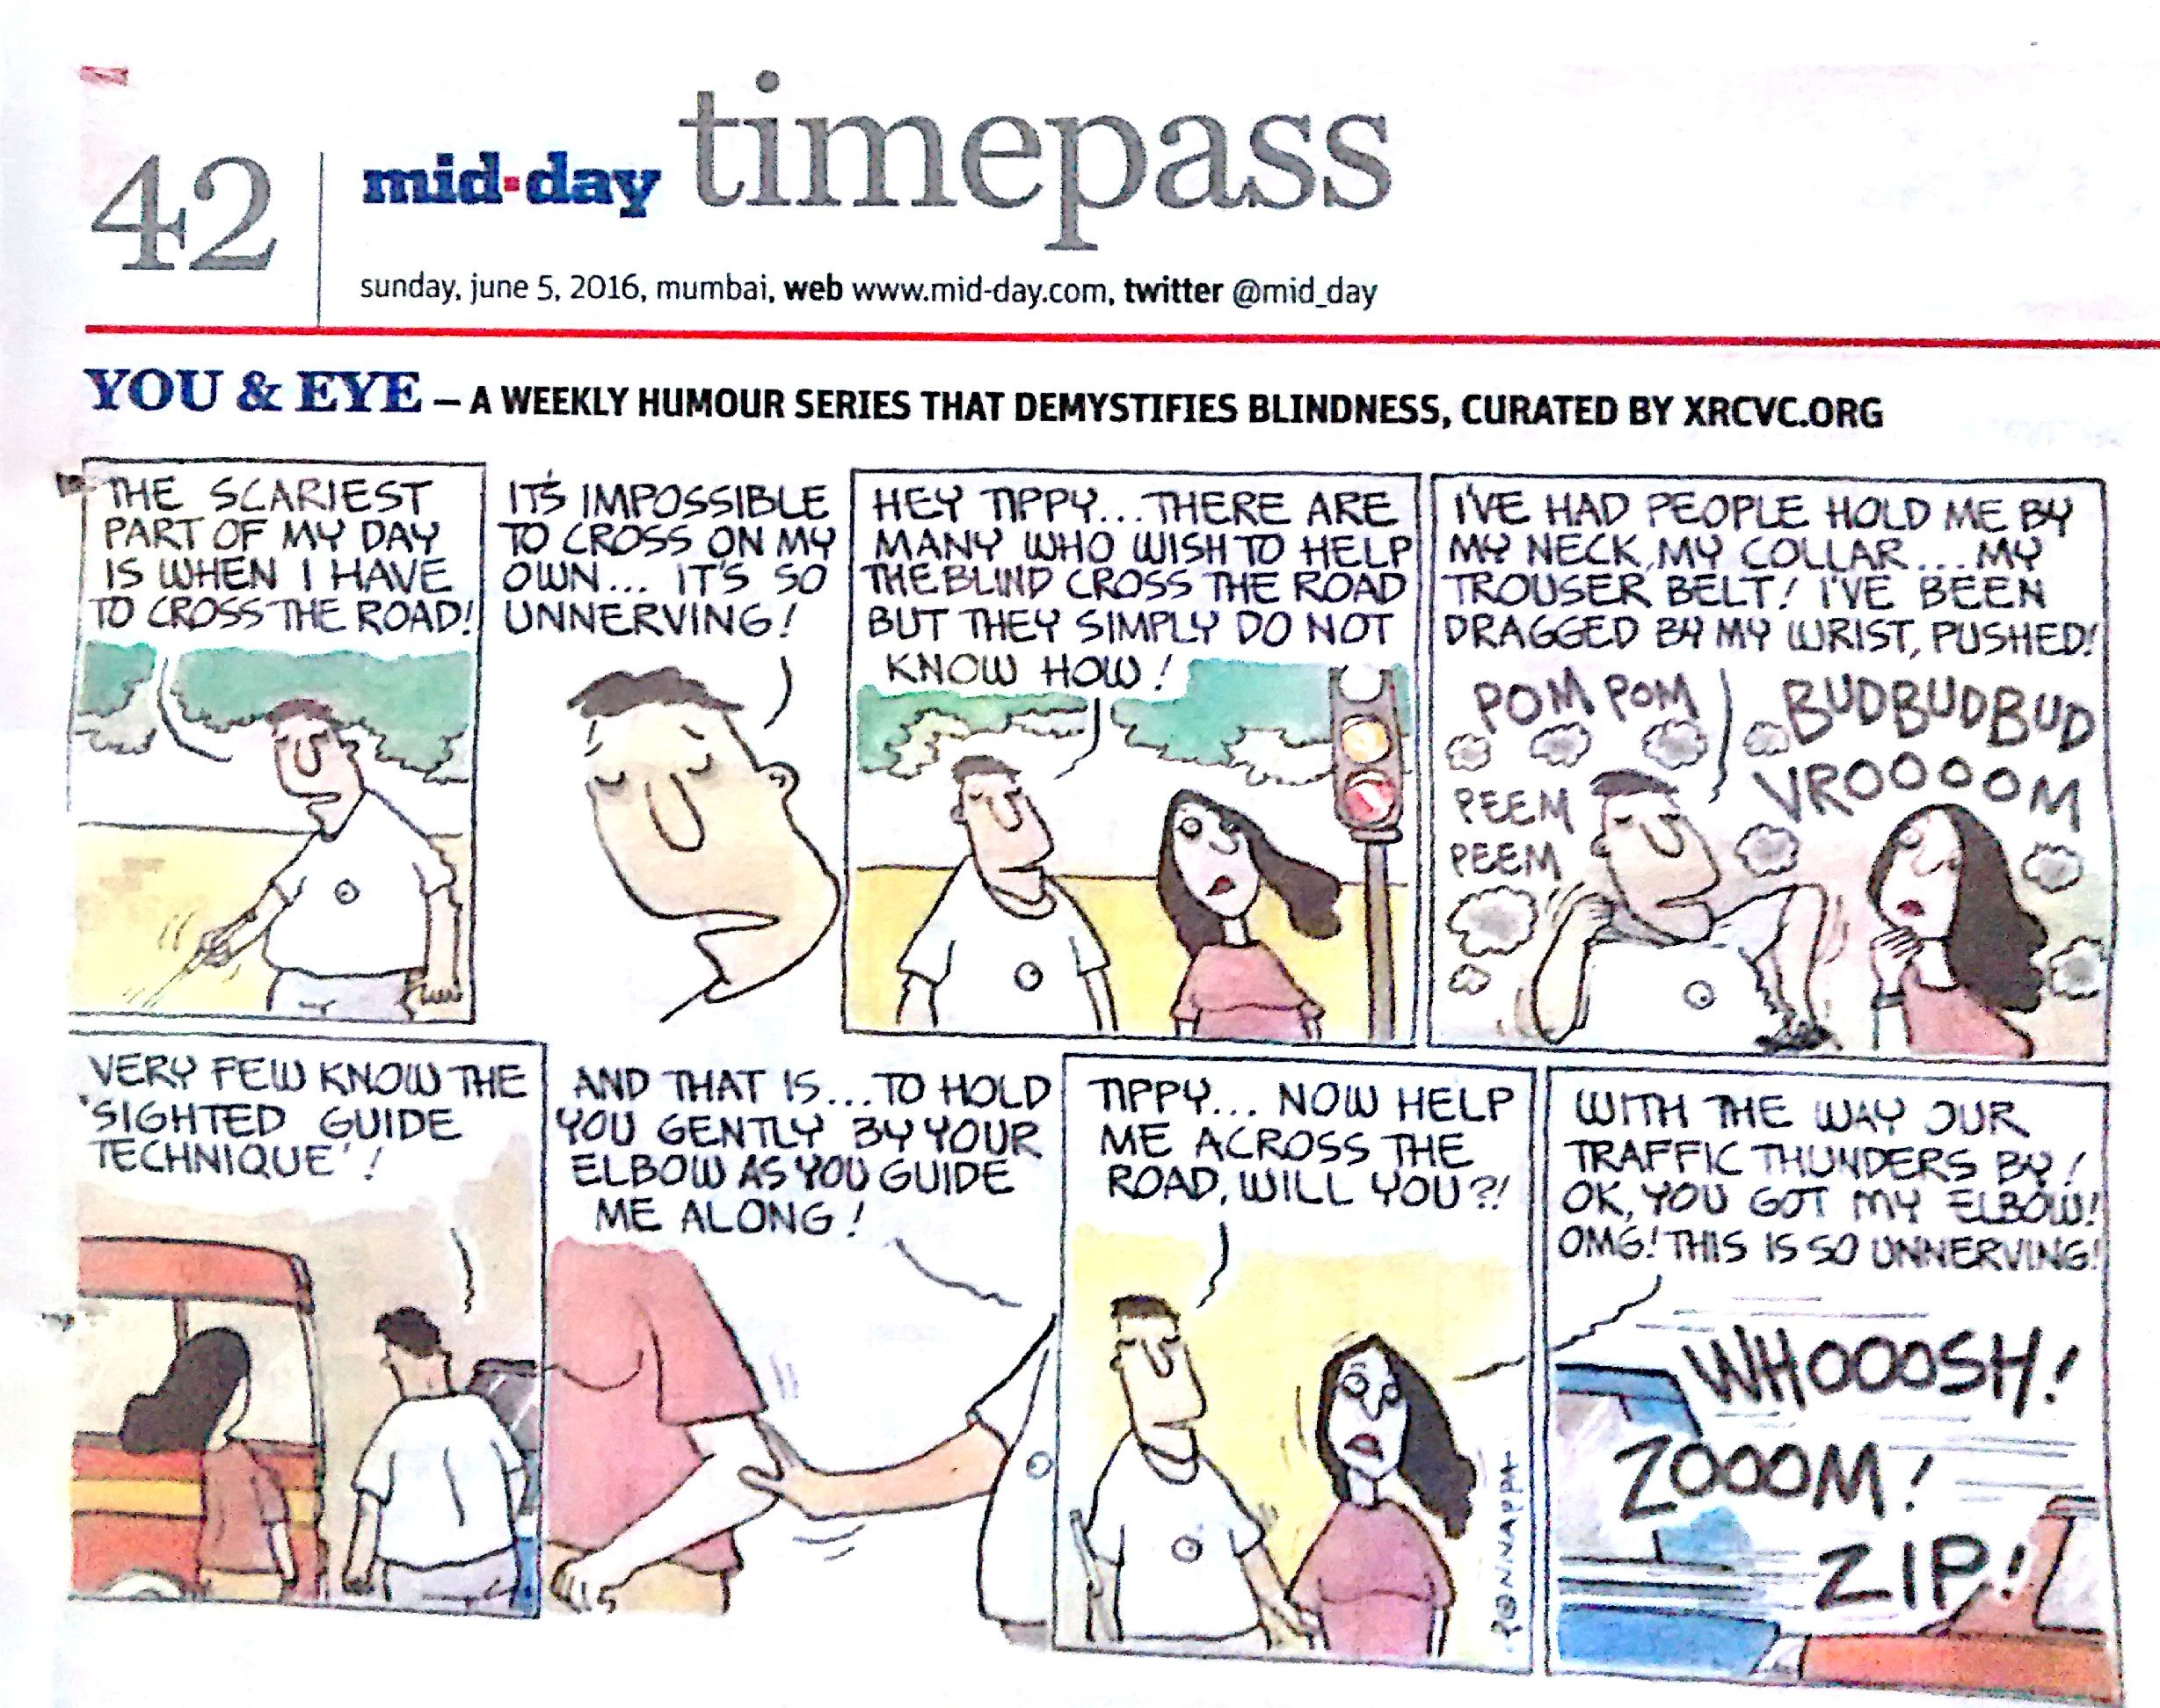 Page 42 mid-day timepass, sunday, june 5, 2016, mumbai, web: www.mid-day.com, twitter @mid_day, YOU & EYE – A WEEKLY HUMOUR SERIES THAT DEMYSTIFIES BLINDNESS, CURATED BY XRCVC.ORG, Image description: A cartoon strip with 8 frames… Frame 1: (The visually impaired man – BG – attempting to navigate with a white cane next to a wall with trees behind) BG: The scariest part of my day is when I have to cross the road! Frame 2: (A close-up of BG) BG: It's impossible to cross on my own… It's so unnerving!  Frame 3: (BG and his friend – Tippy – standing at a signal, waiting to cross the road) BG to Tippy: Hey Tippy… There are many who wish to help the blind cross the road but they simply do not know how. Frame 4: (Tippy watches as BG points to different parts of his body as he talks. Traffic is represented by smoke that surrounds them and these sound words mentioned – POM POM, PEEM PEEM, BUDBUDBUD, VROOOOM) BG to Tippy: I've had people hold me by my neck, my collar… my trouser belt! I've been dragged by my wrist, pushed! Frame 5: (BG and Tippy are seen from the back facing the traffic, waiting to cross the road) BG to Tippy: Very few know the 'sighted guide technique'! Frame 6: (A close-up of BG's hand on Tippy's elbow) BG to Tippy: And that is… to hold you gently by your elbow as you guide me along! Frame 7: (BG holding the white cane in his right hand with his left hand on Tippy's right elbow using the sighted guide technique) BG to Tippy: Tippy… now help me across the road, will you?! Frame 8: Vehicles zooming past and these sound words mentioned – WHOOOSH! ZOOOM! ZIP! Tippy to BG: With the way our traffic thunders by! OK, you got my elbow! OMG! This is so unnerving! (Signed Ponnappa, in Frame 7)